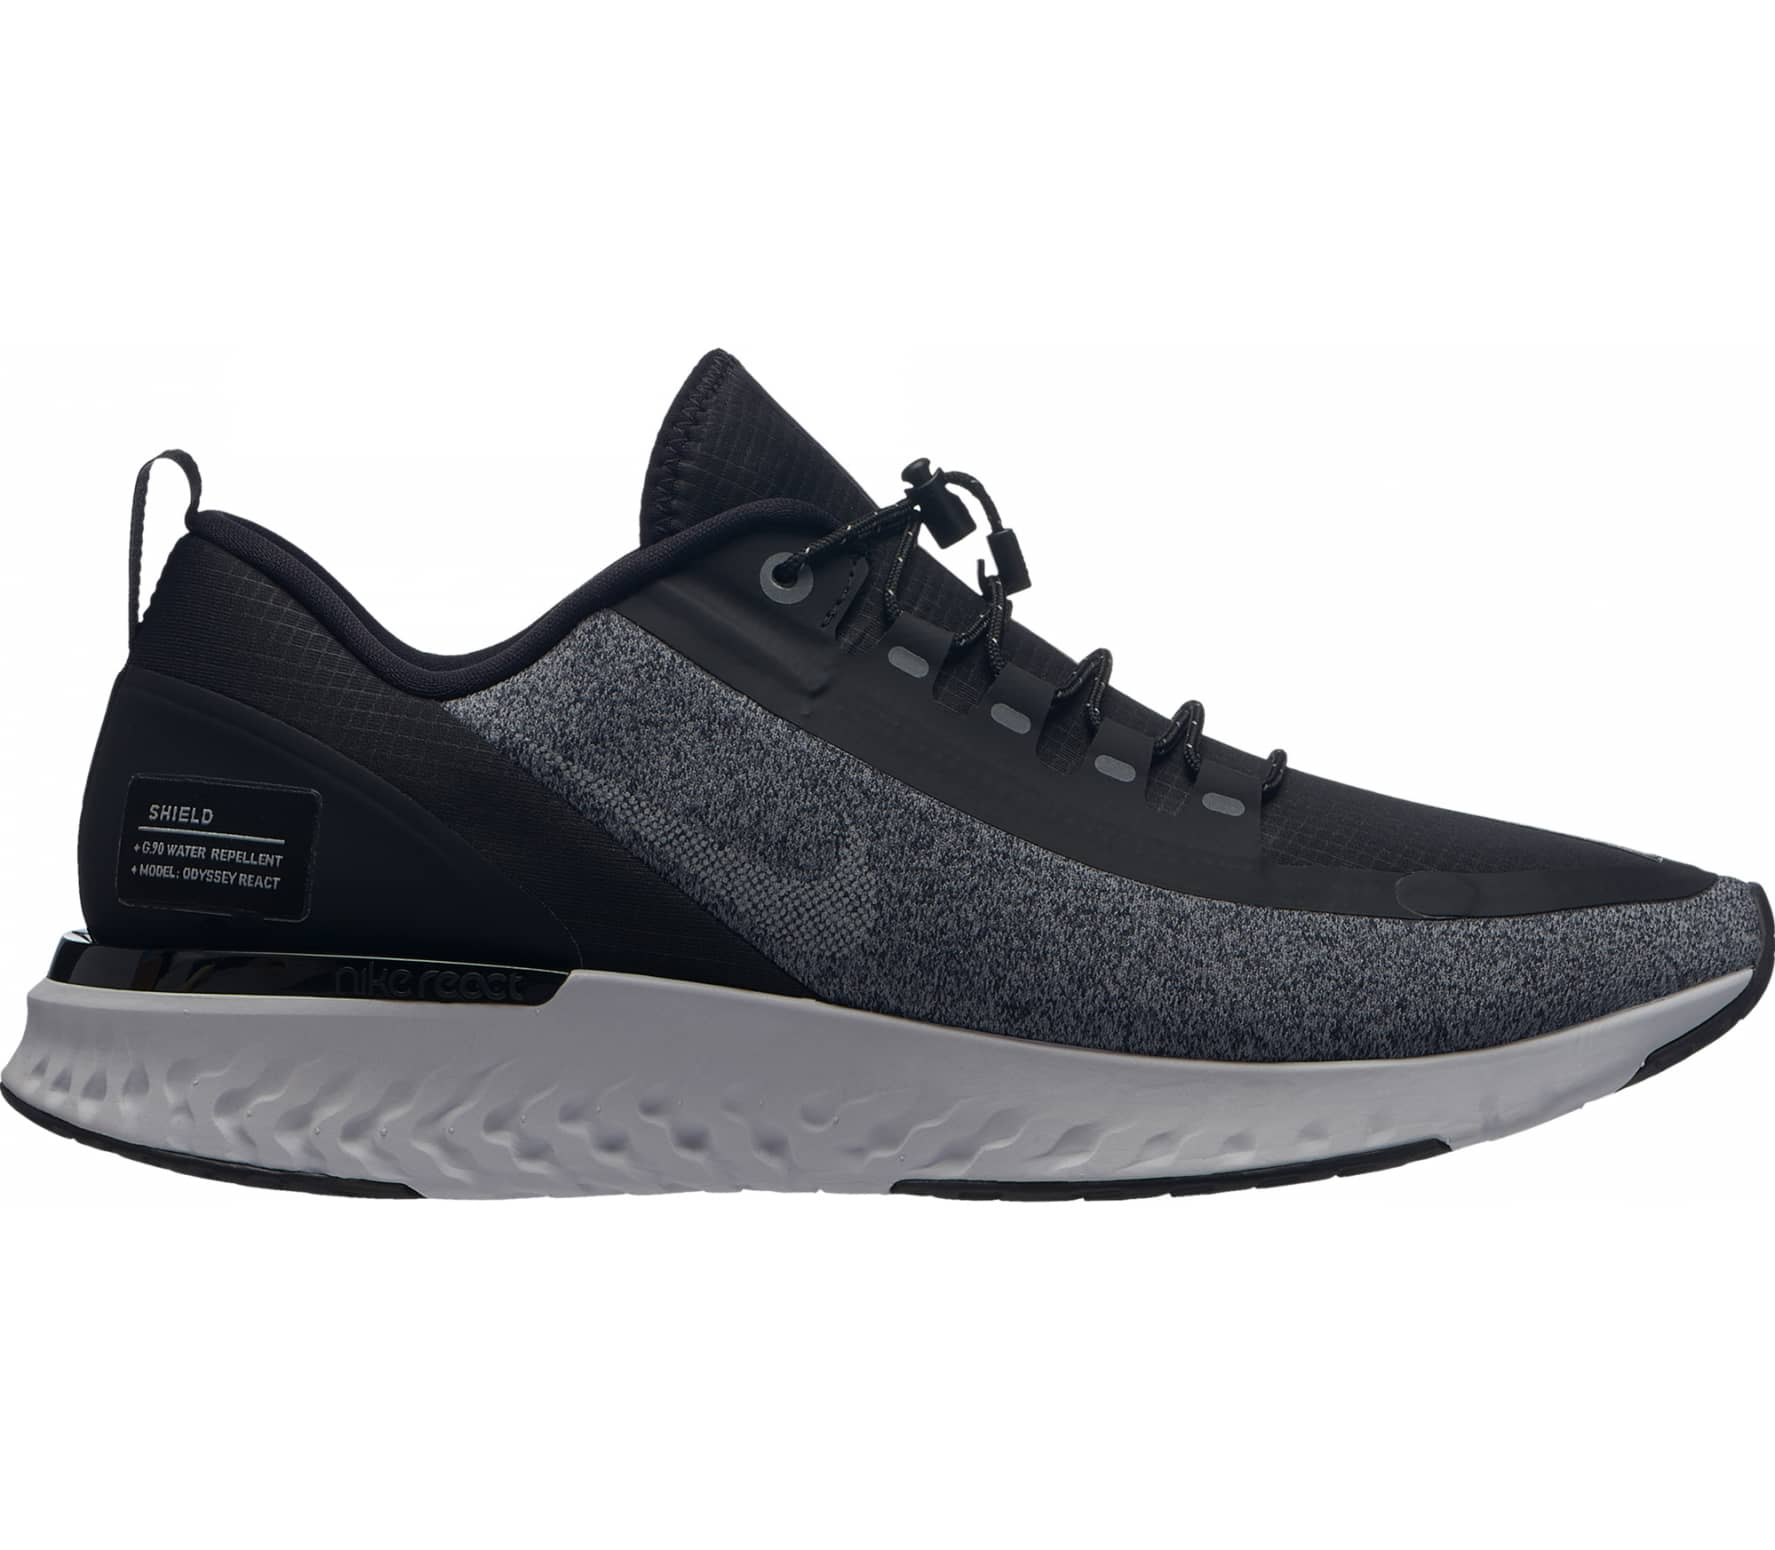 new product 14267 7e7ce Nike - Odyssey React Shield Mujer Zapatos para correr (negro)